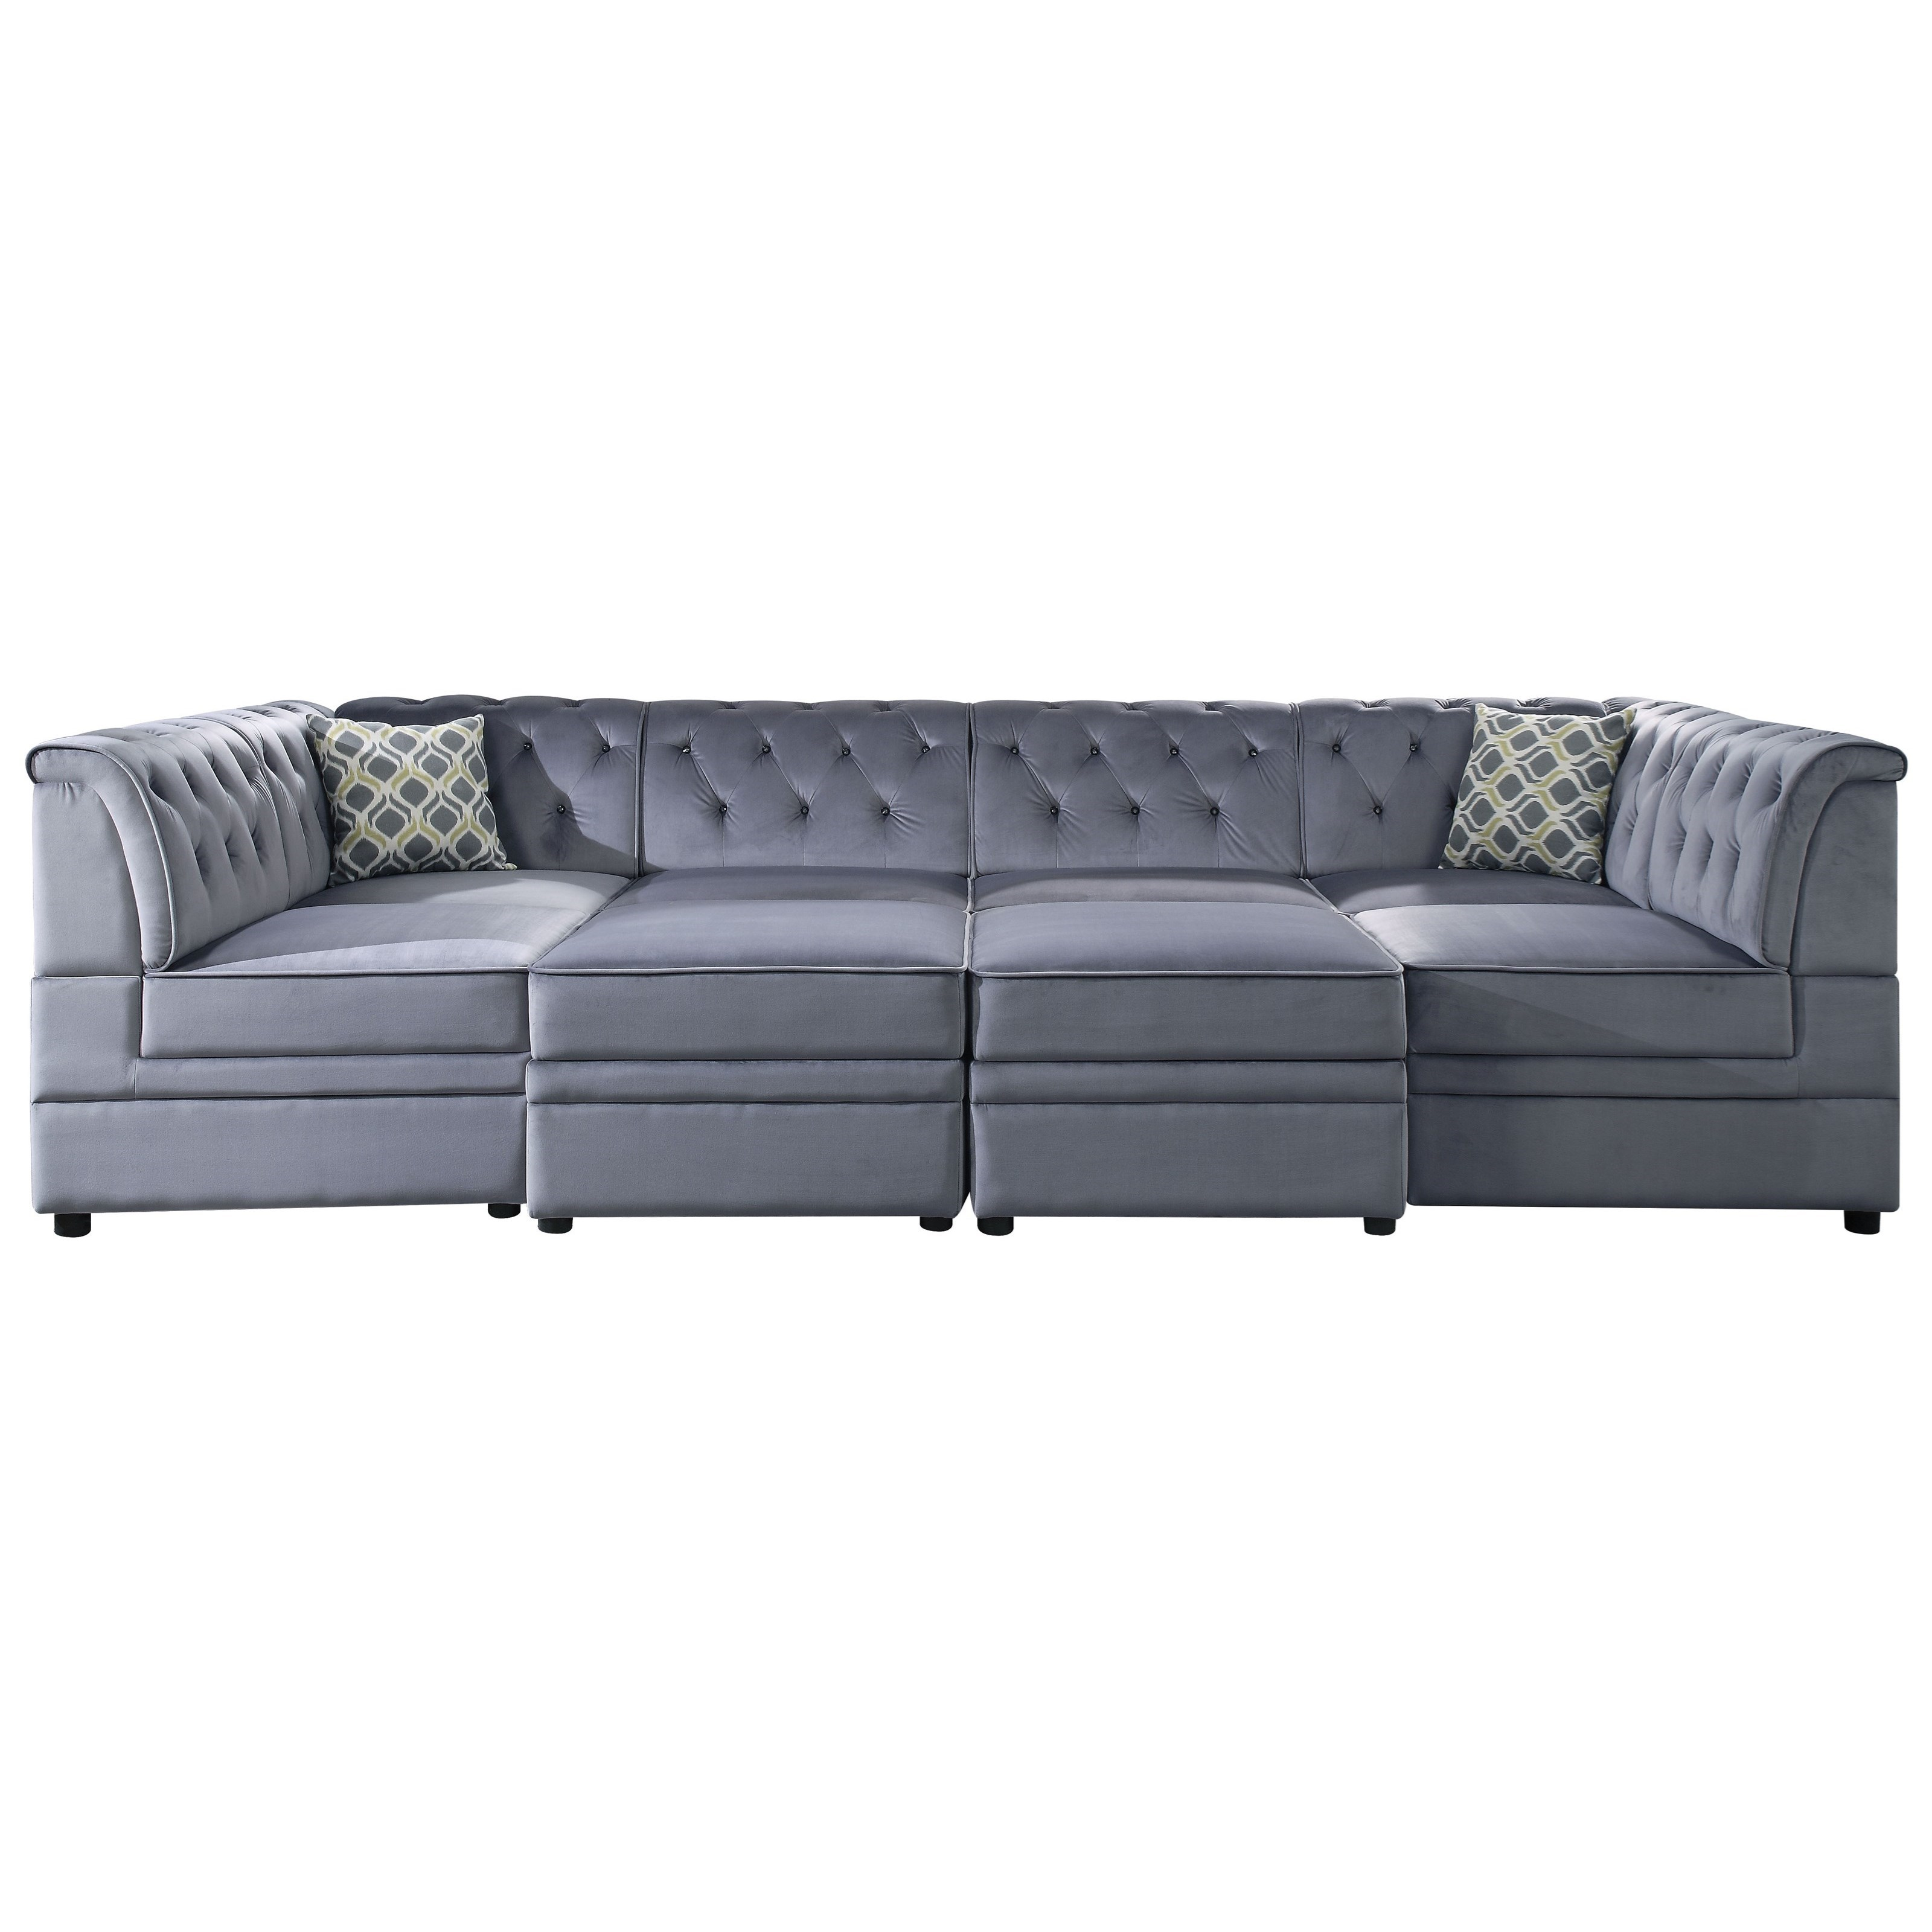 Prime Acme Furniture Bois Ii 4 Seat Tufted Sectional Sofa With Bralicious Painted Fabric Chair Ideas Braliciousco